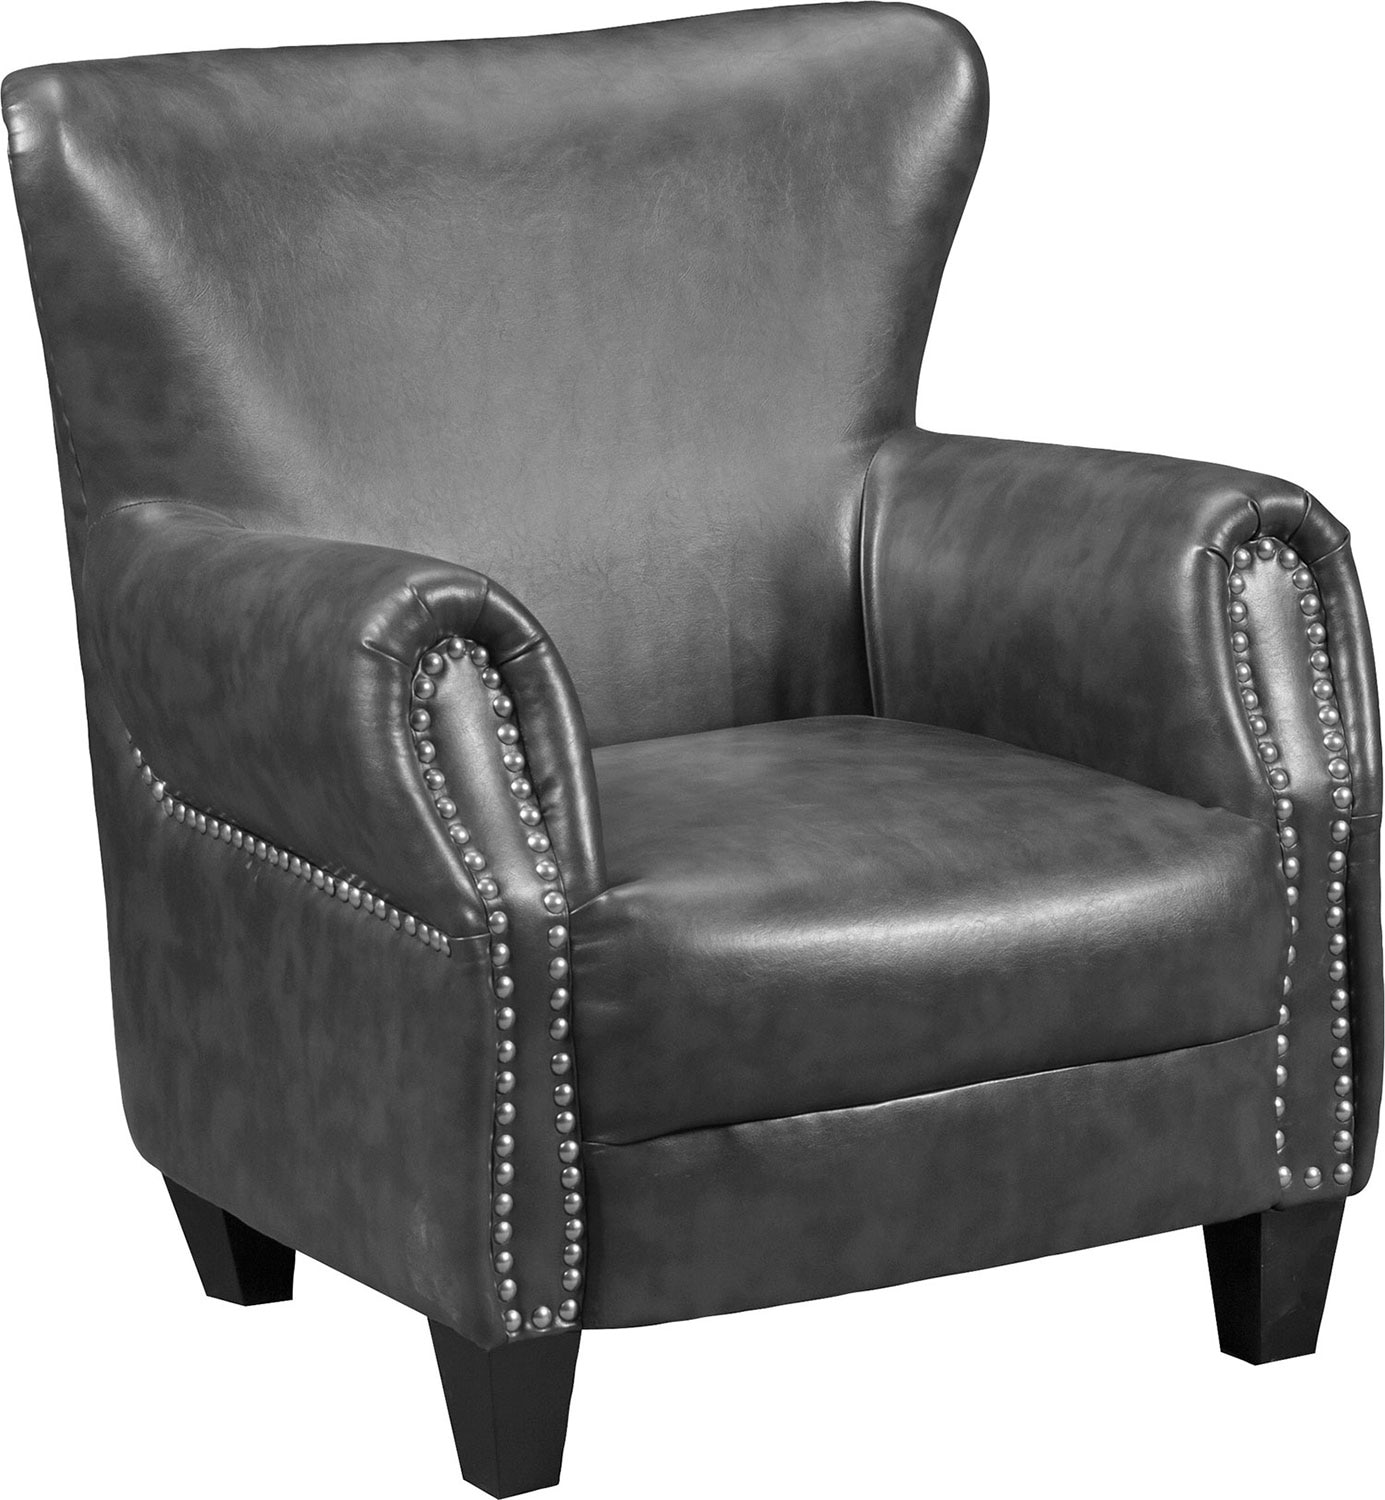 flint bonded leather accent chair  grey  the brick -  leather accent chair  grey hover to zoom